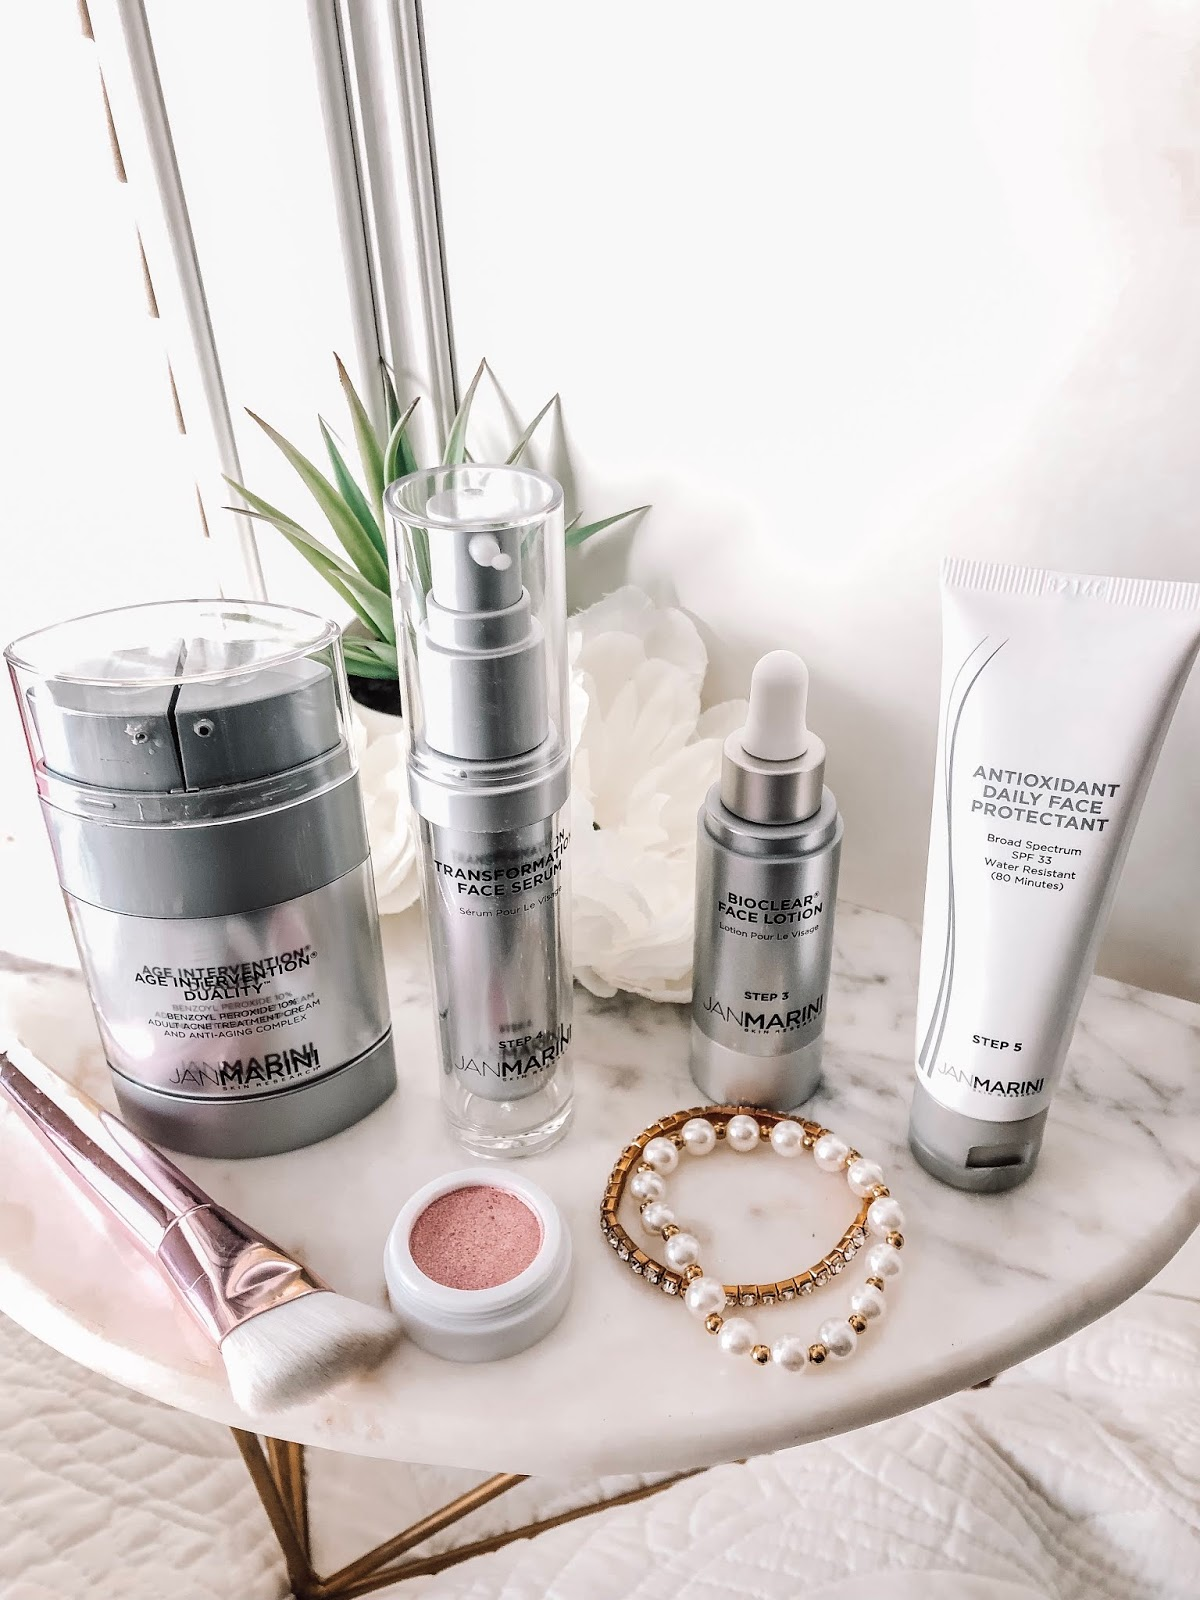 Jan Marini Age Intervention Duality. A dual-action treatment for anti-aging and acne concerns. Affordable by Amanda is a beauty blogger in Tampa Bay, Florida. She is sharing how to fight acne in your 20s with 3 products.